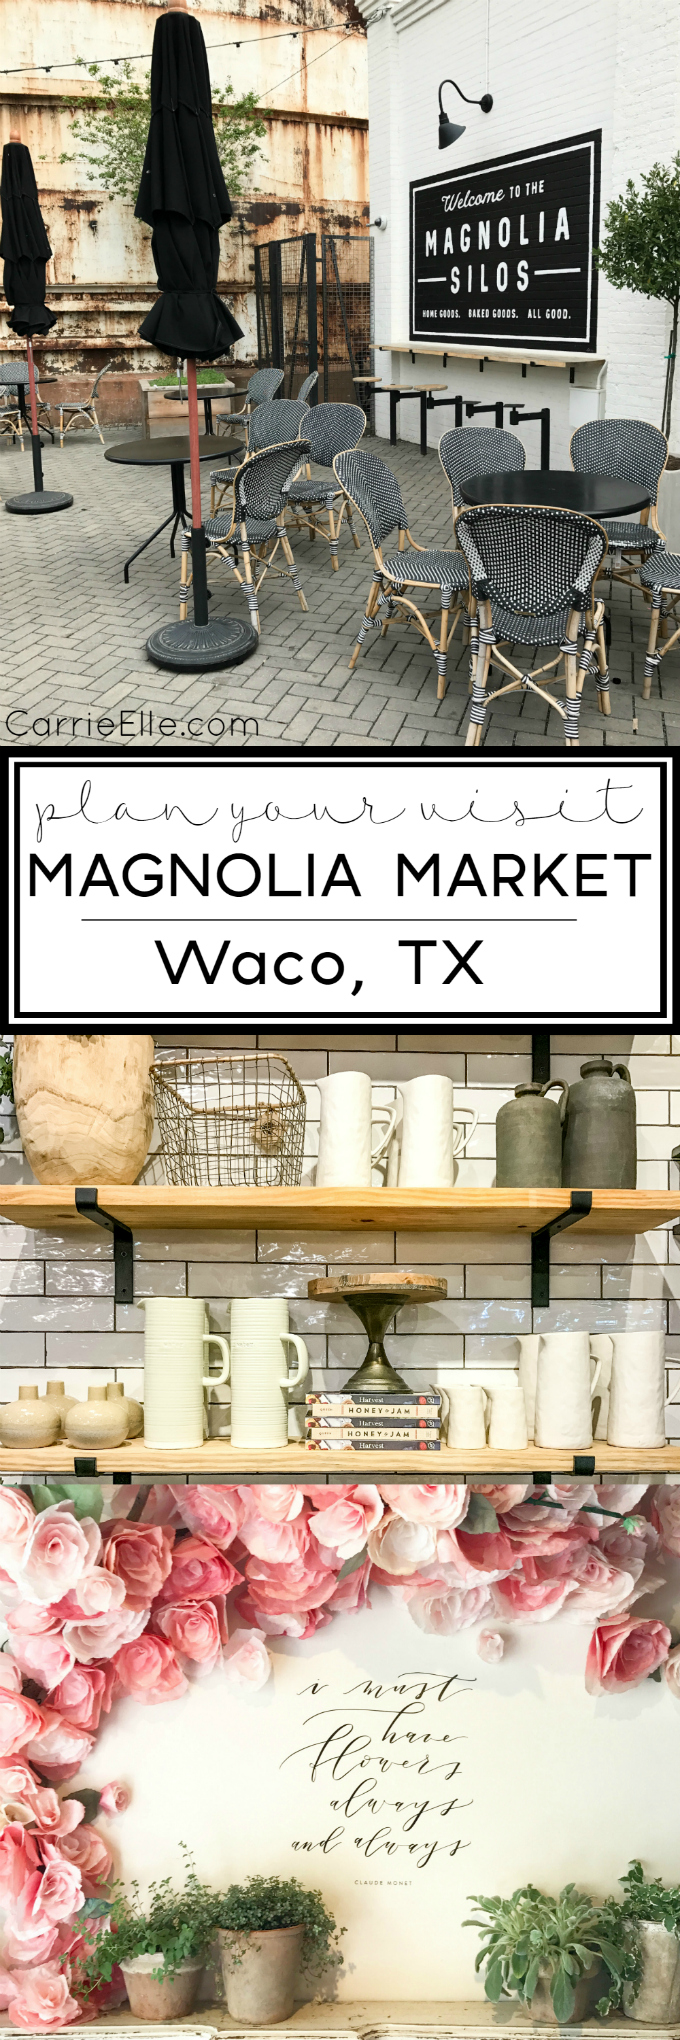 Plan Your Visit to Magnolia Market